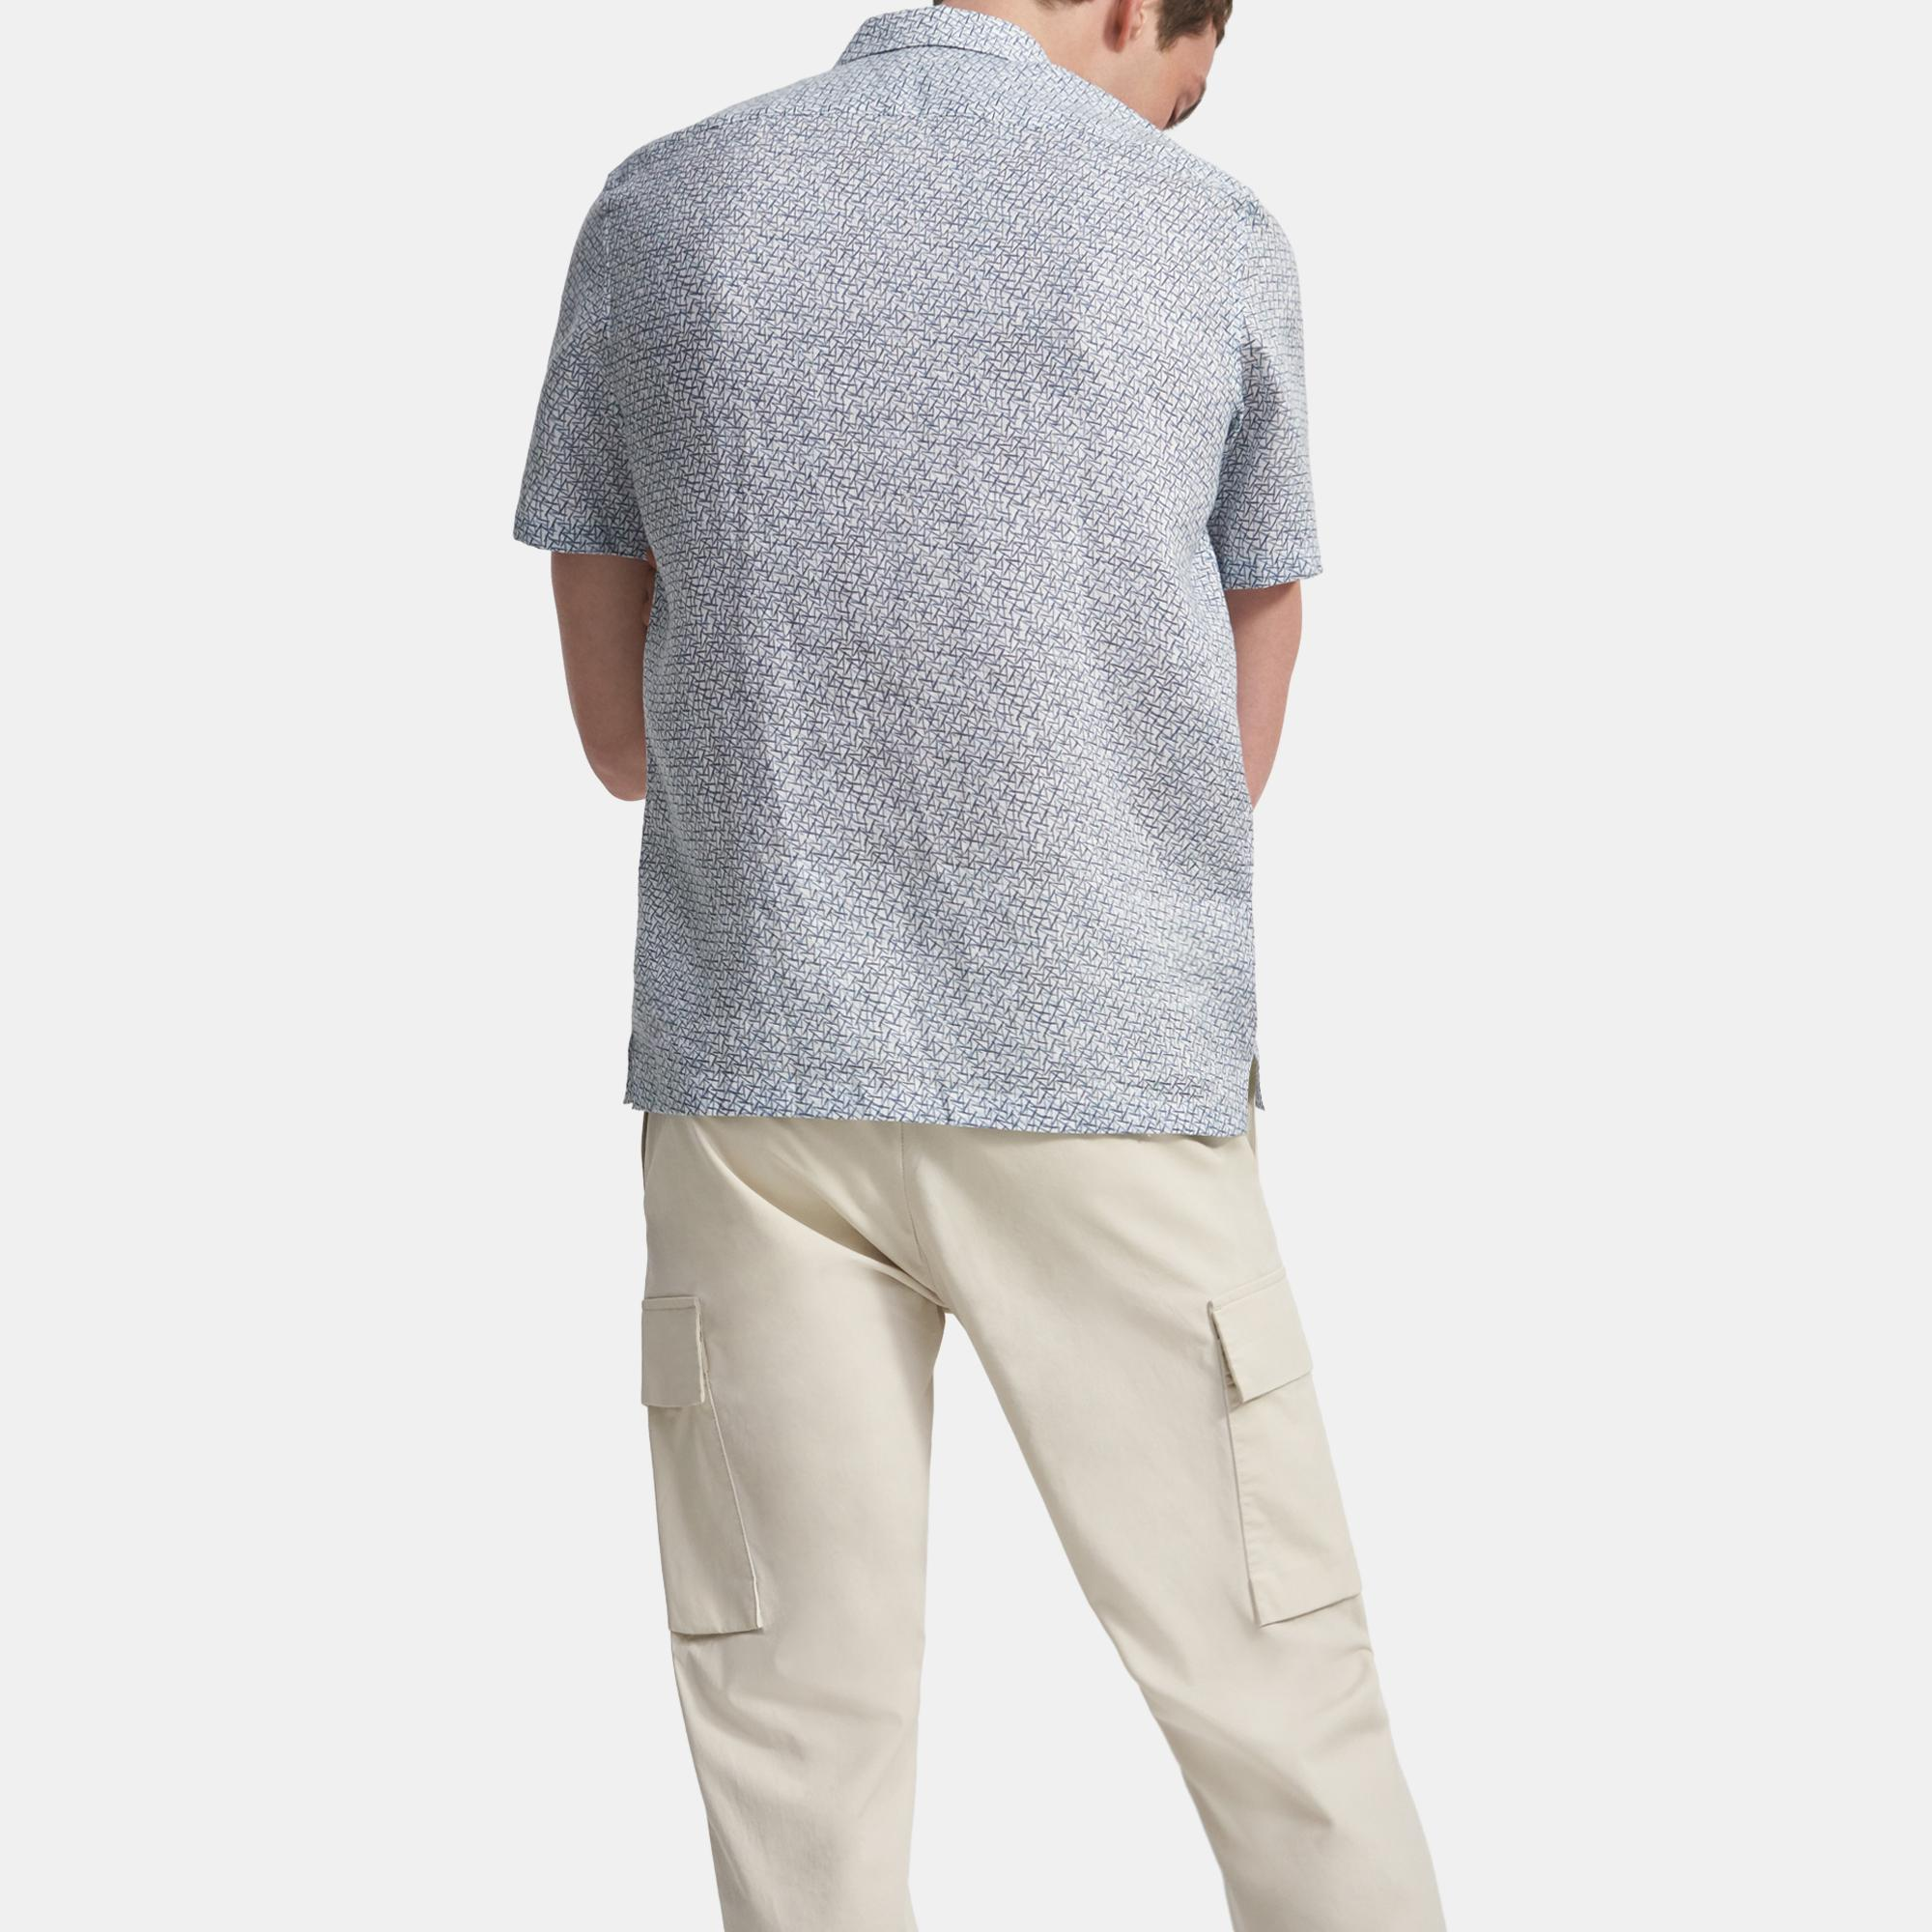 Irving Short-Sleeve Shirt in Spur Linen   Theory